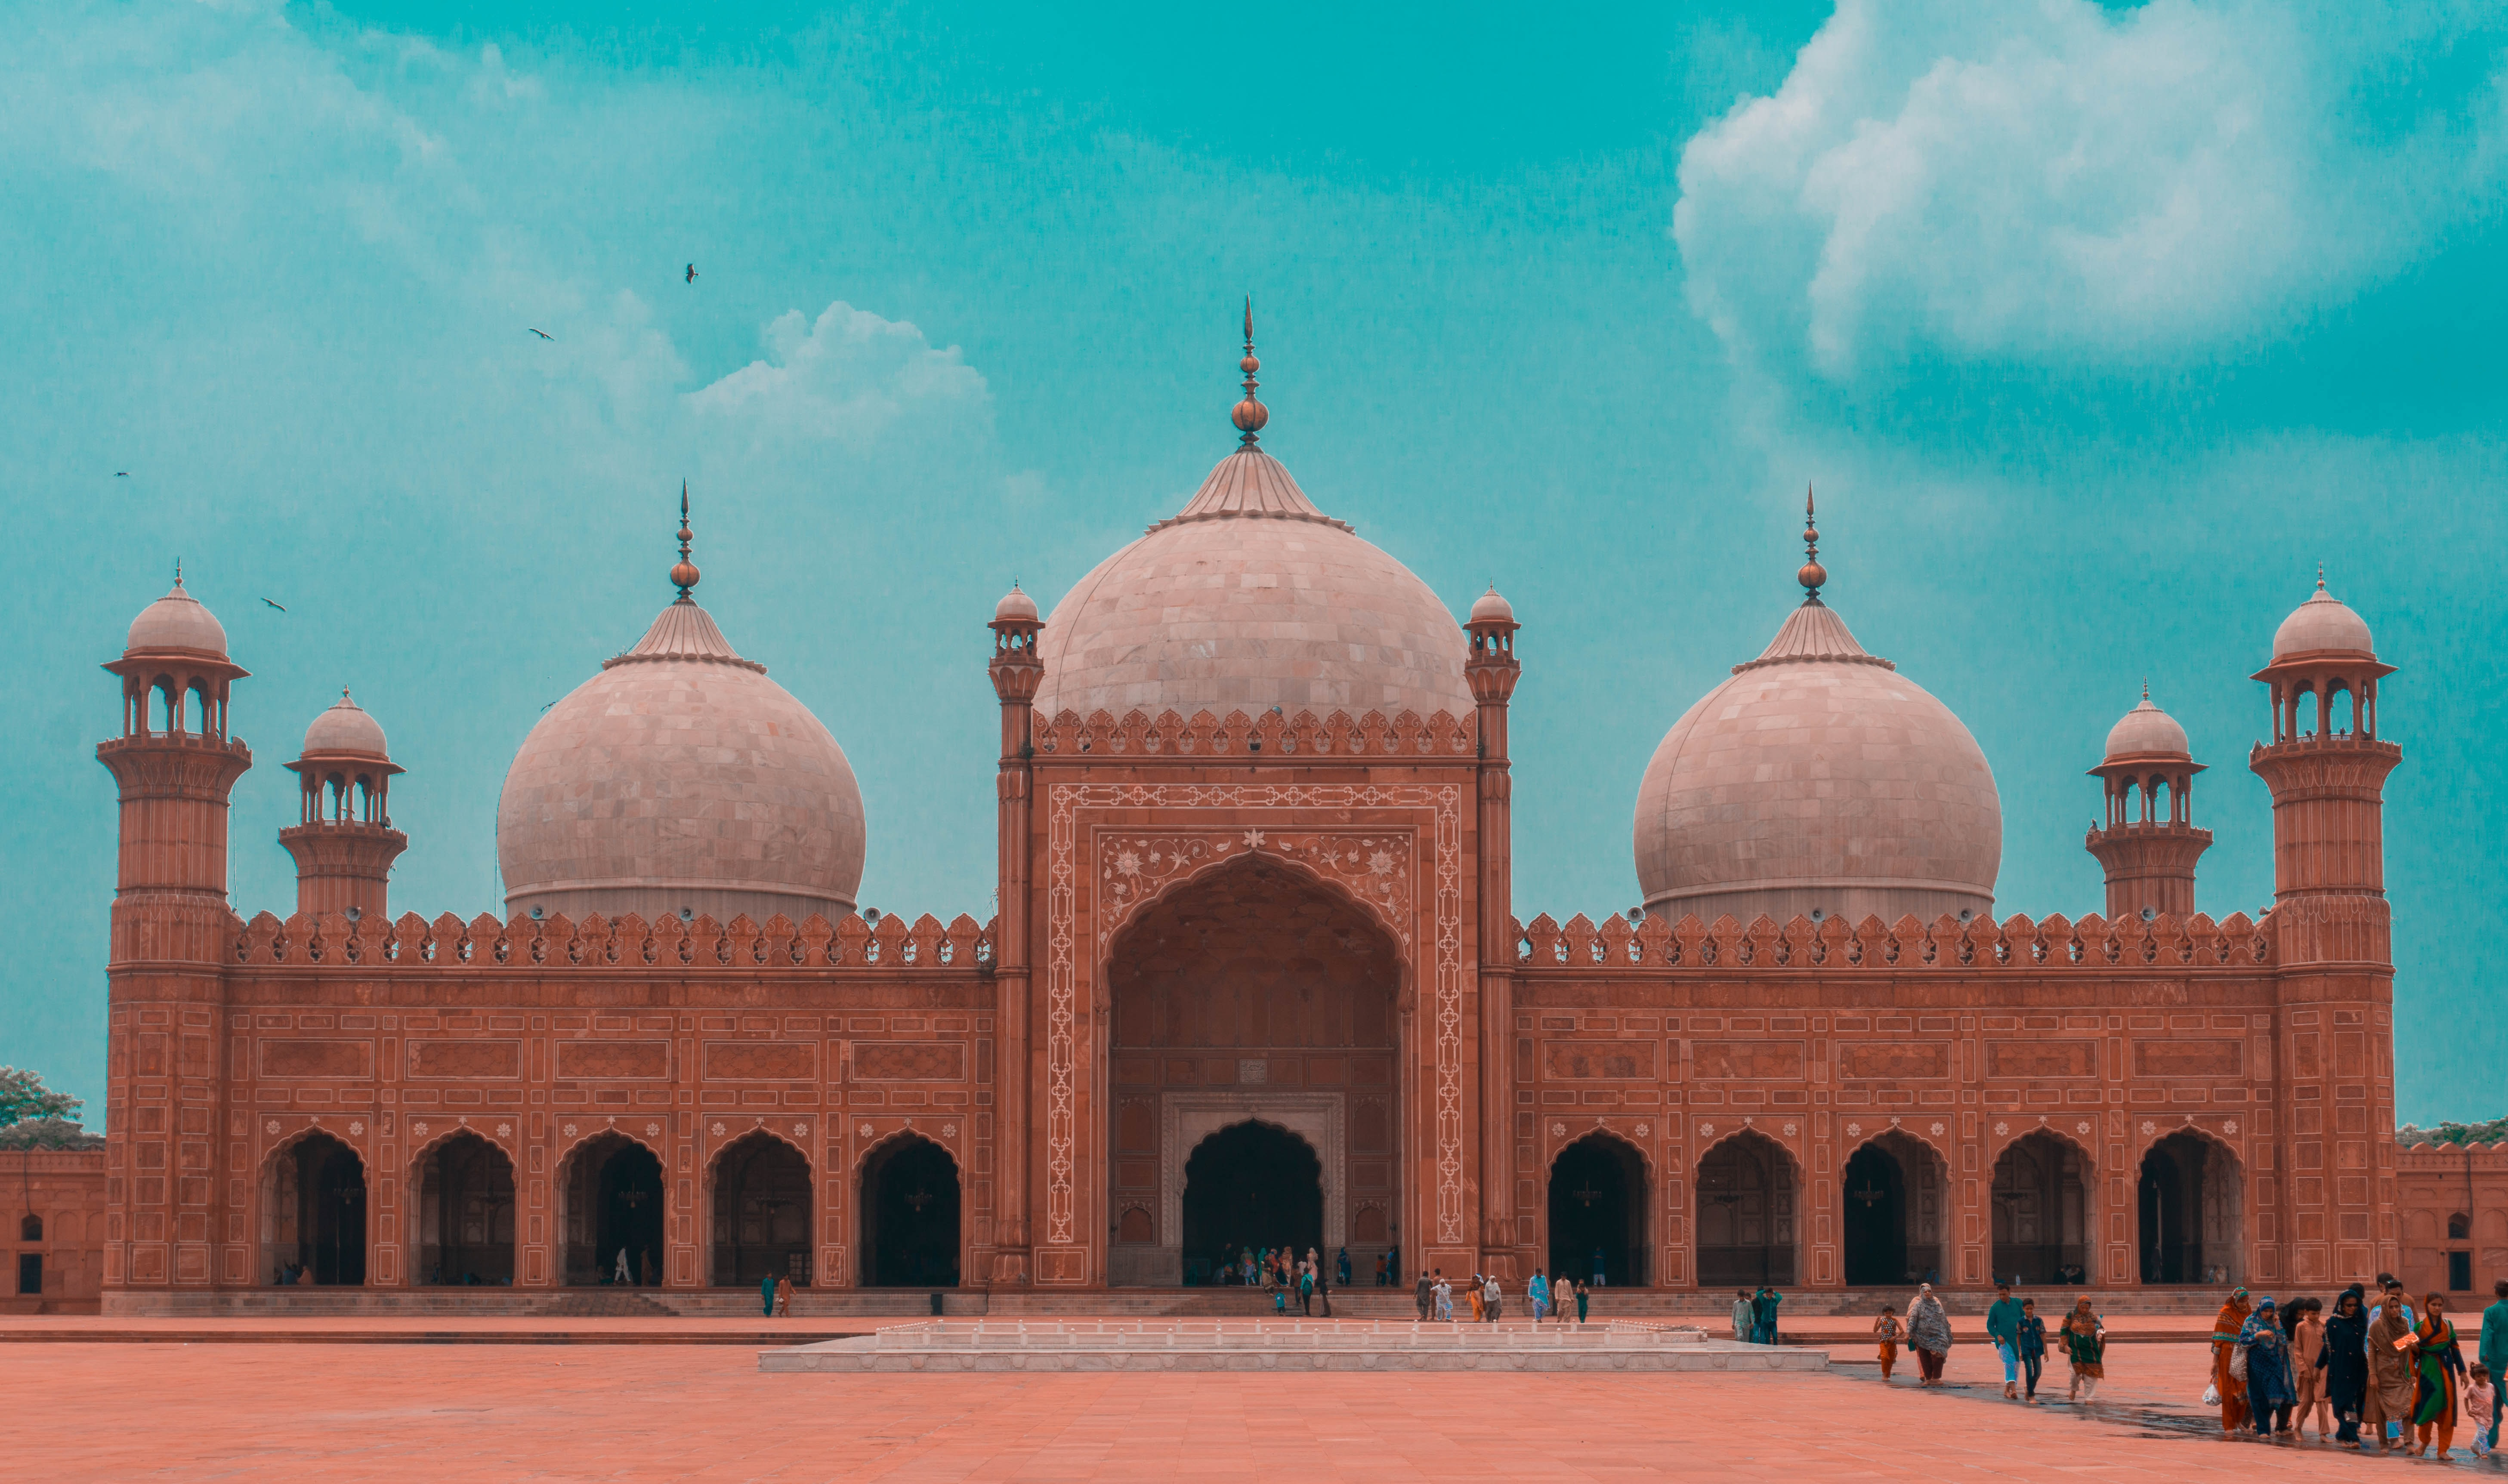 Tourists explore the ornate Badshahi Mosque on a bright blue day